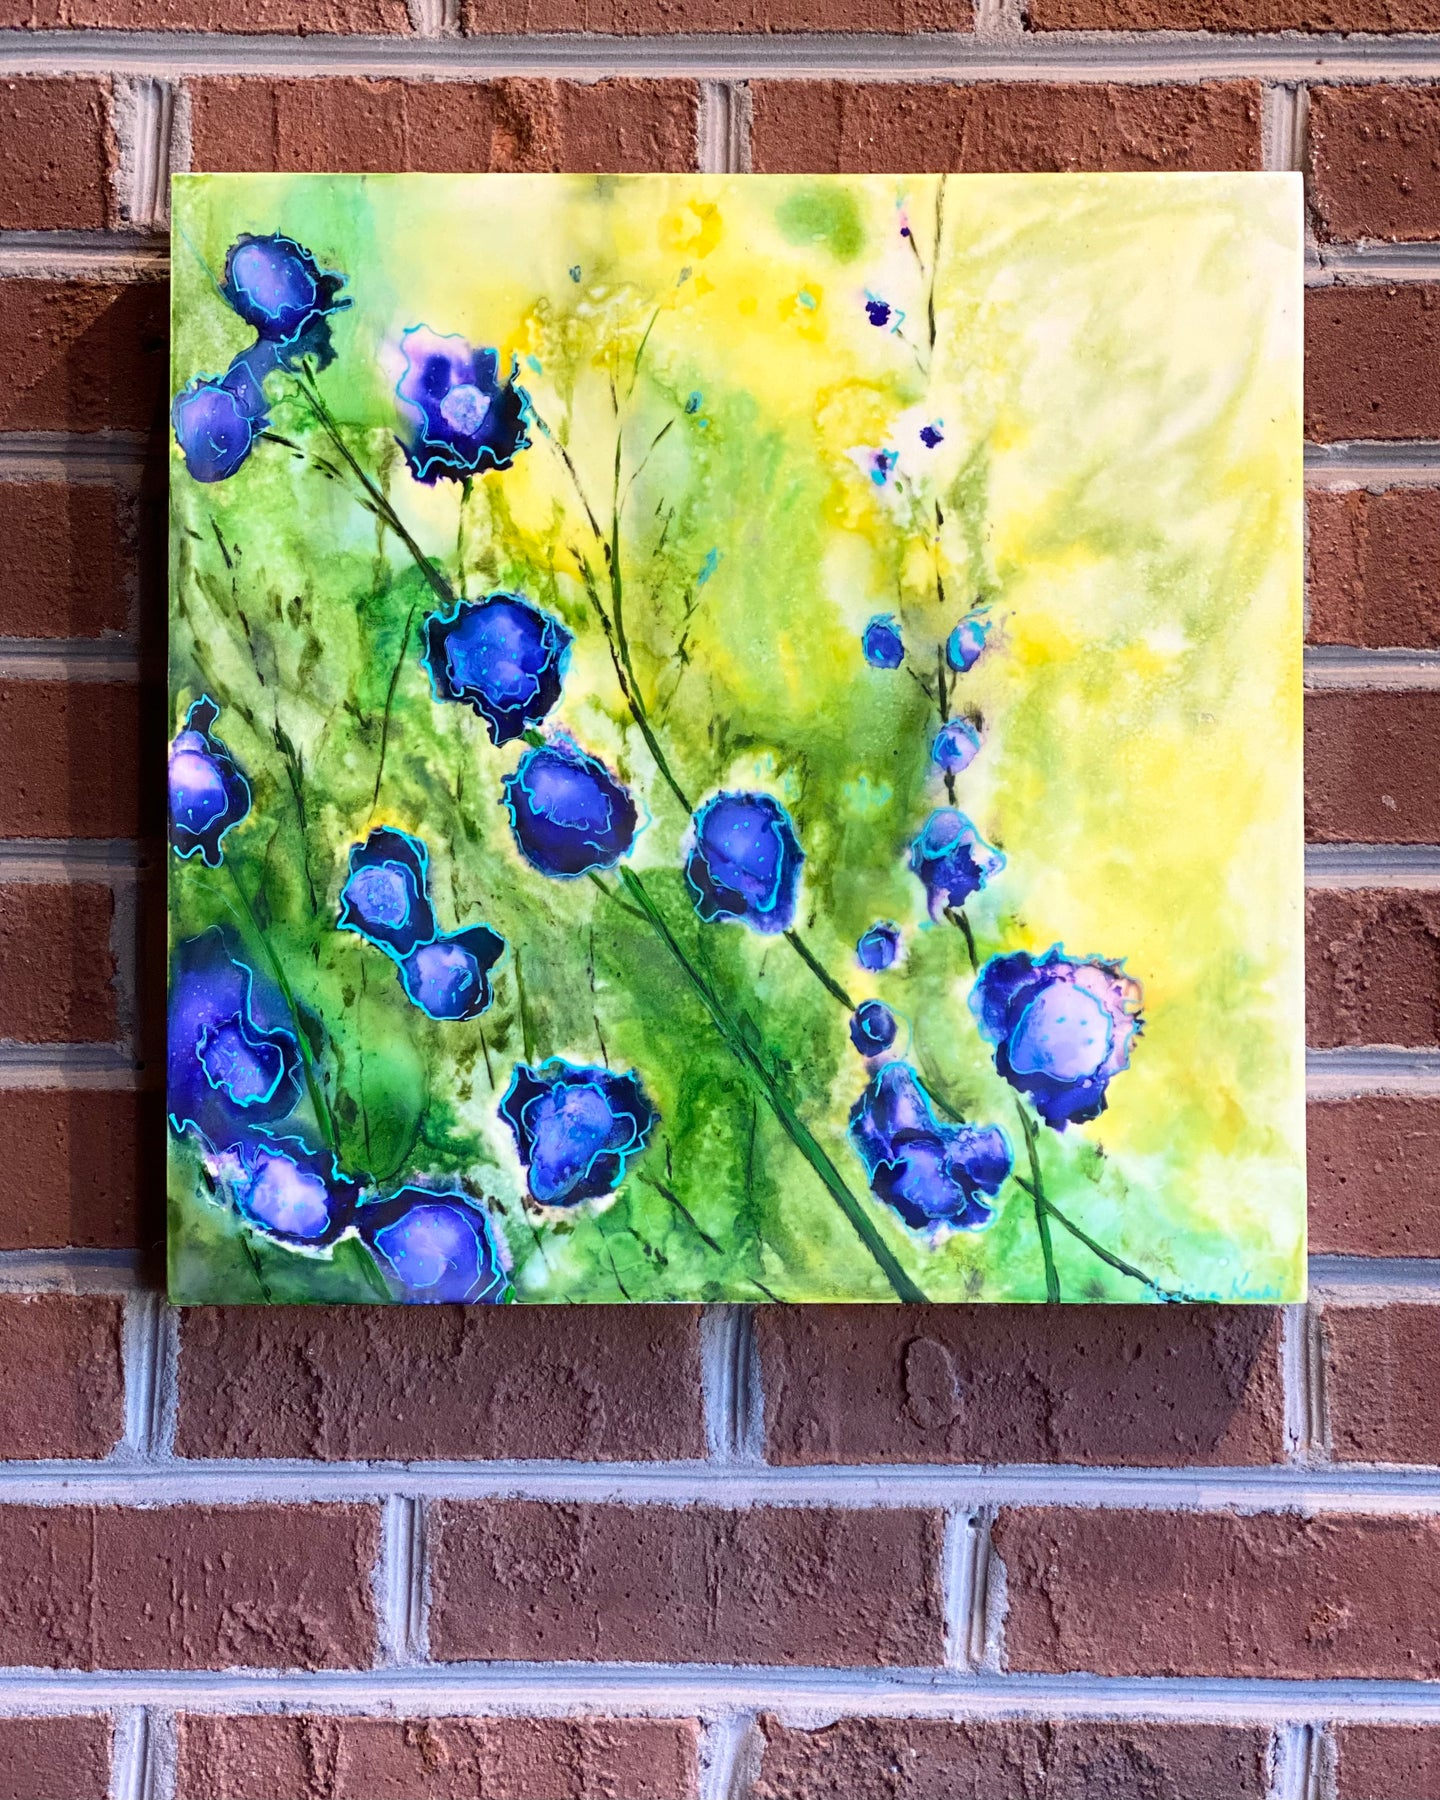 Encaustic wall art by Locals artist Nadine Koski